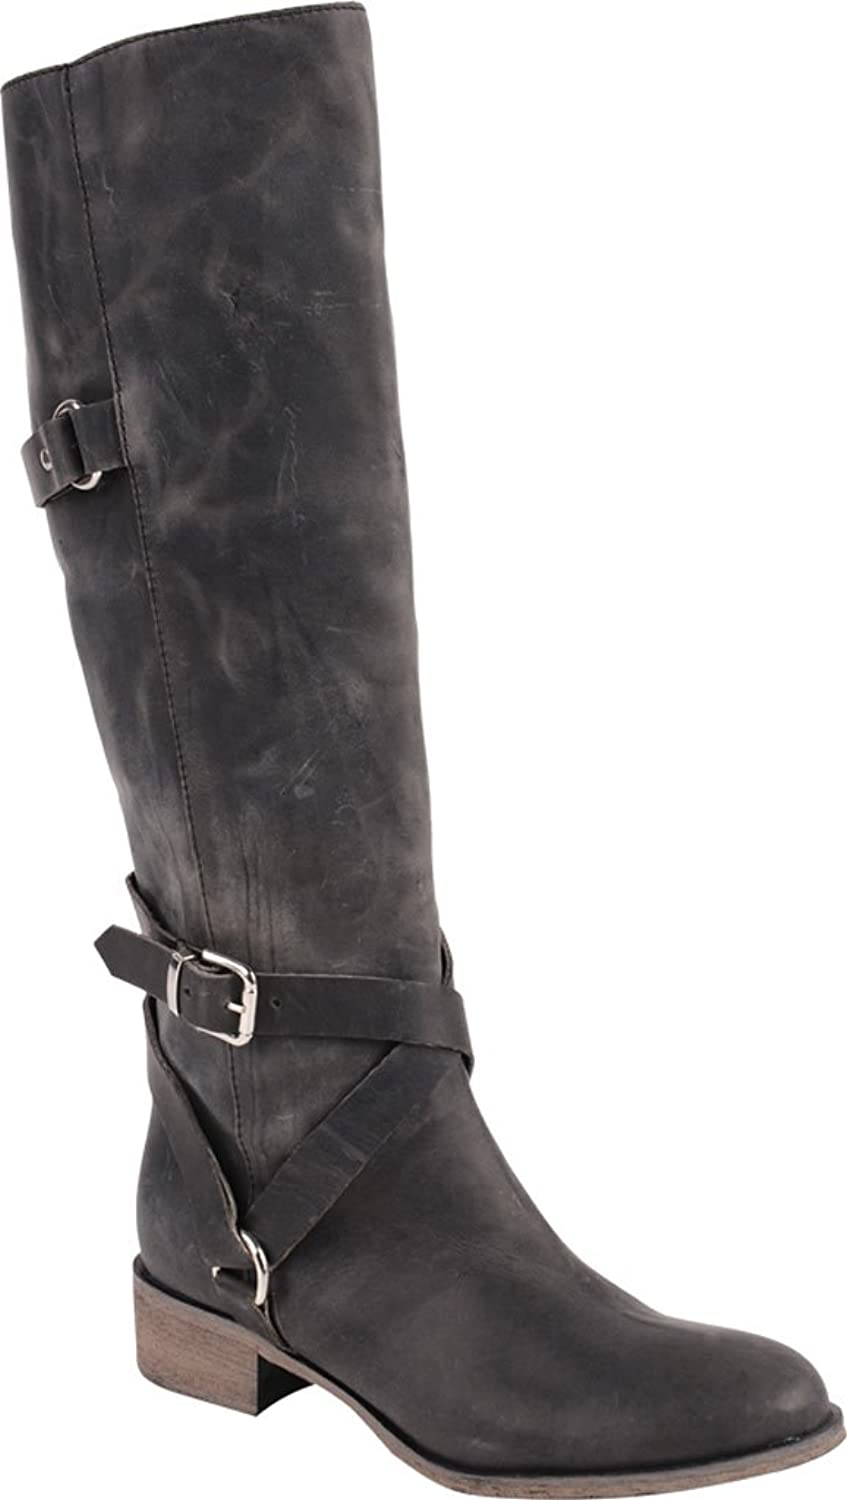 Women Leather Knee High Strappy Boots - DeluxeAdultCostumes.com